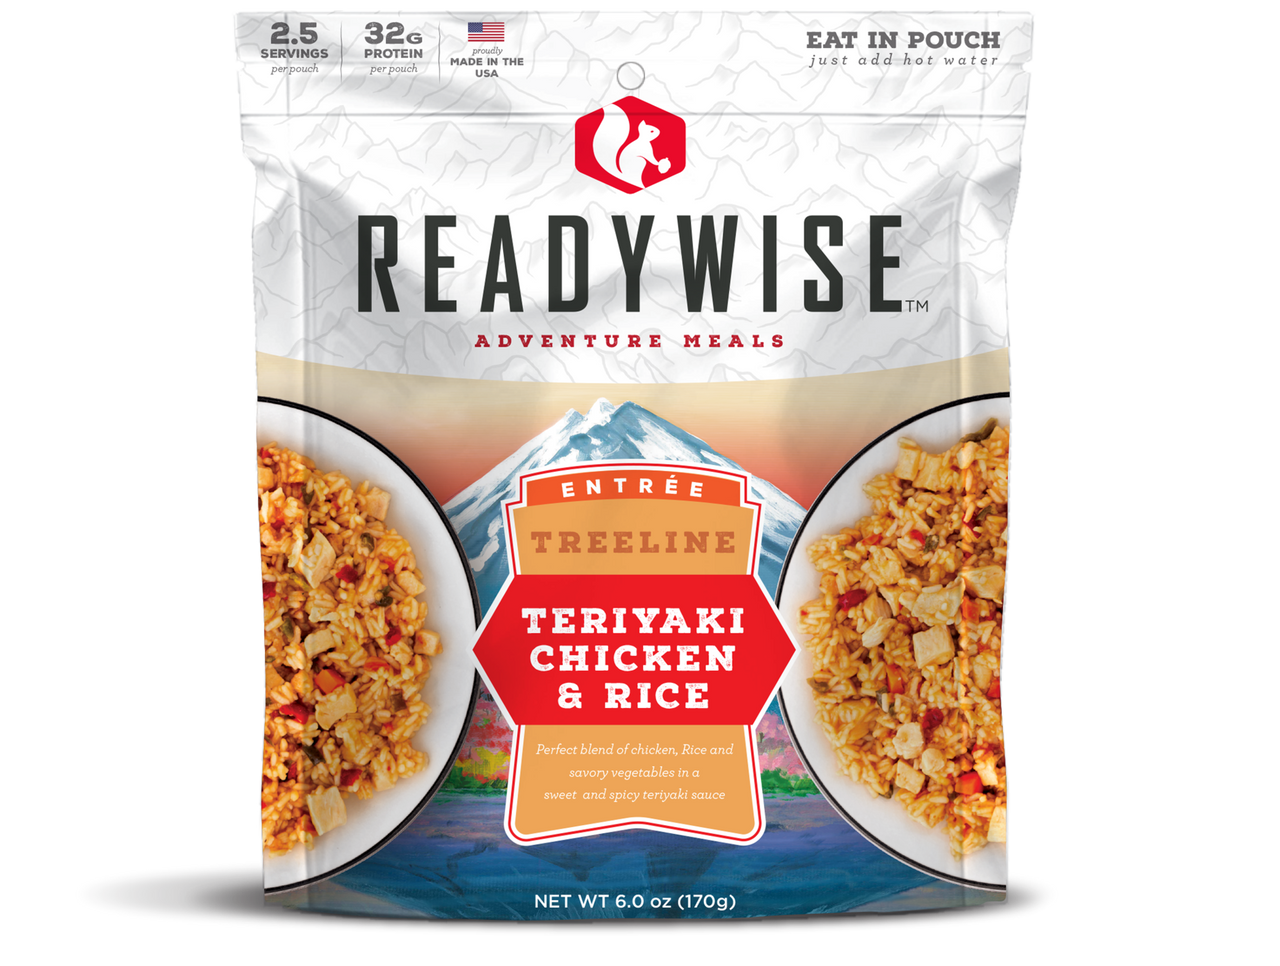 Wise Teriyaki Chicken and Rice - 2 Serving Outdoor Pouch